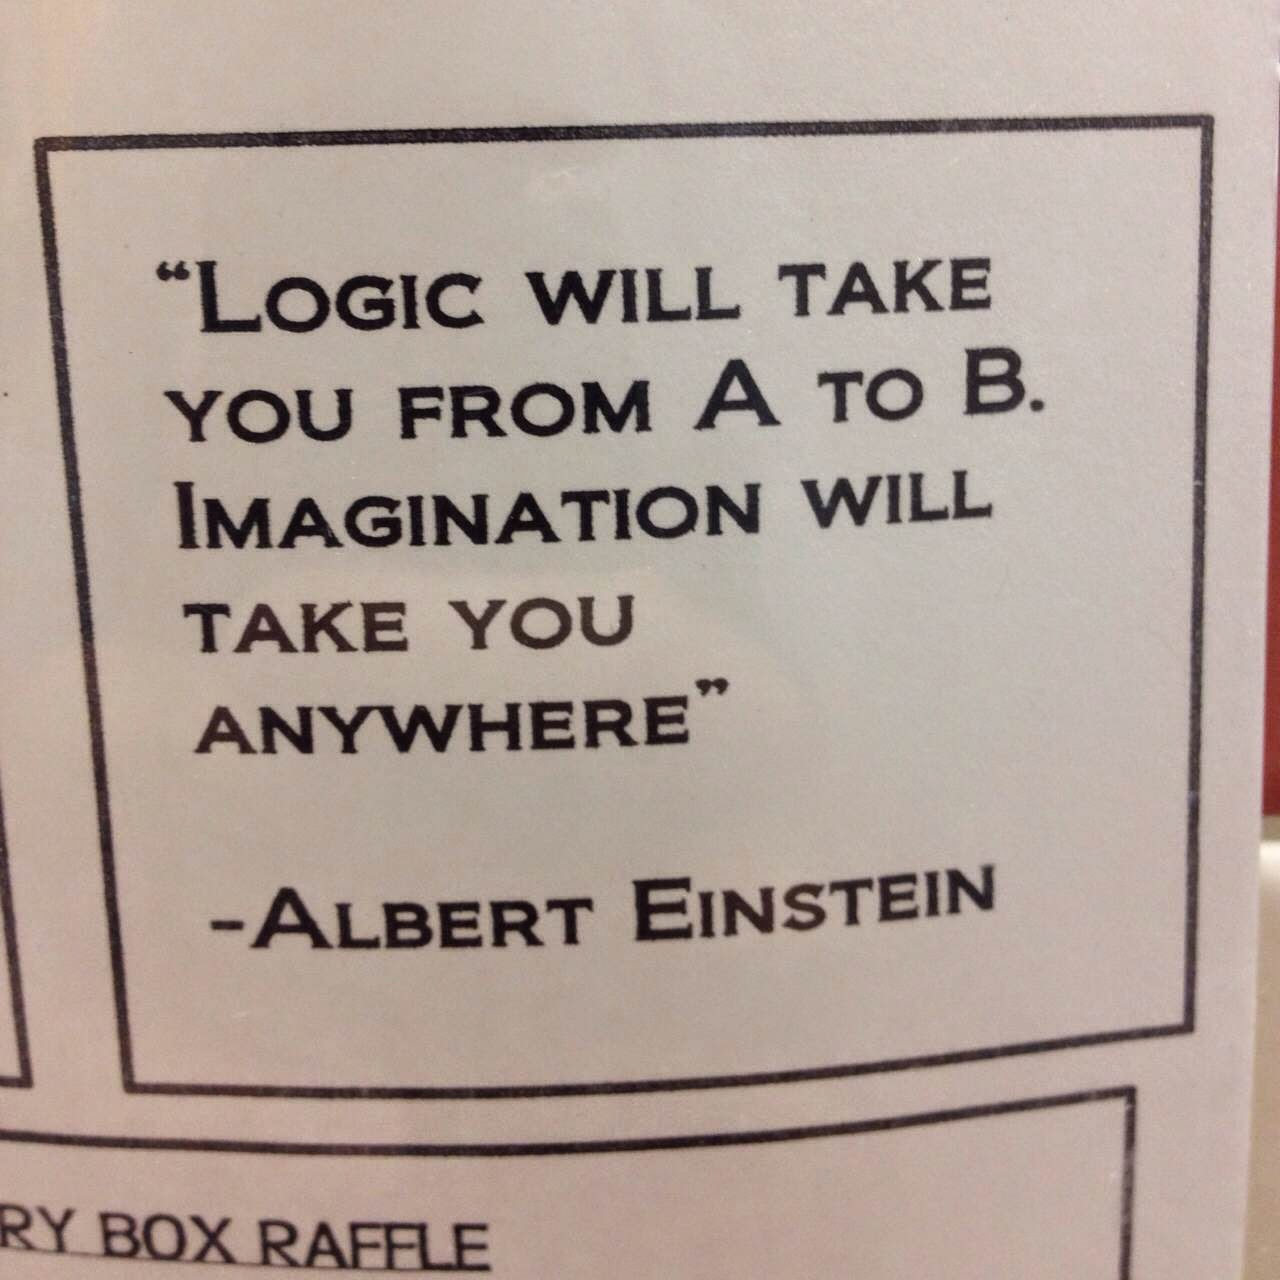 Quotes For Middle School Students: Quotes For Middle School Students. QuotesGram